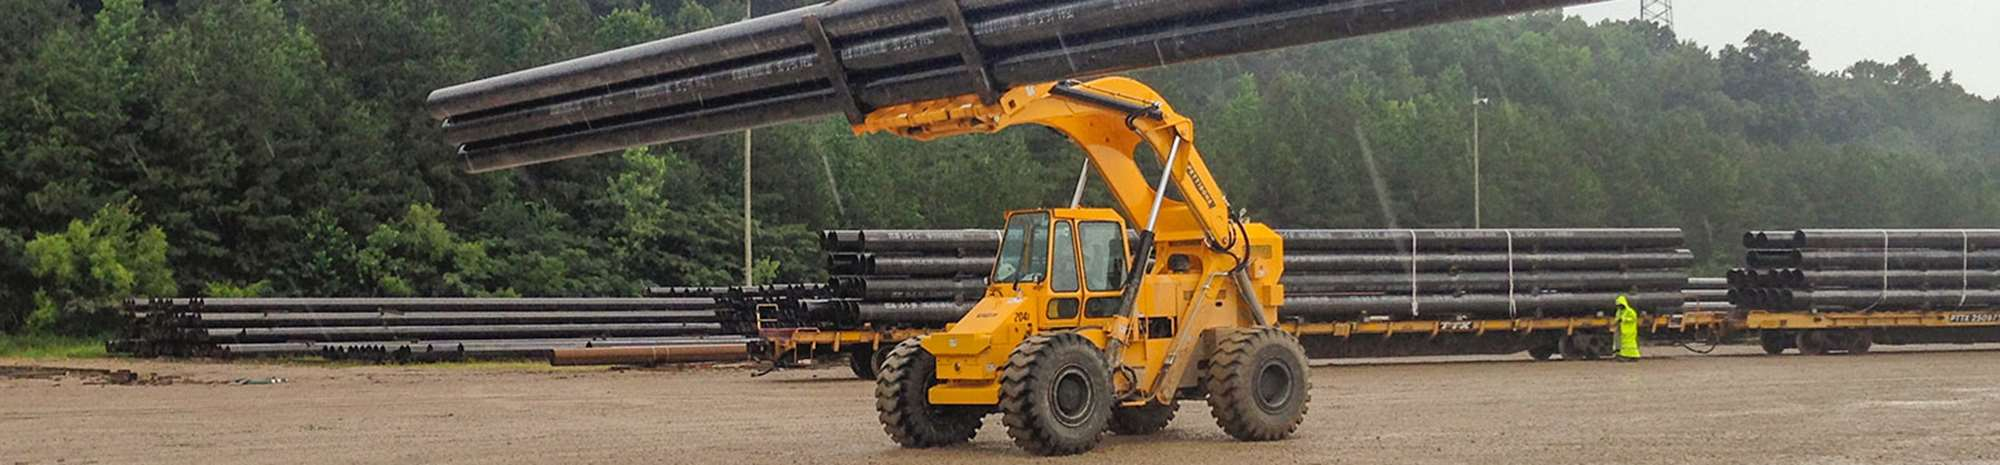 Ardco_Equipment_Banners_12_020217.jpg